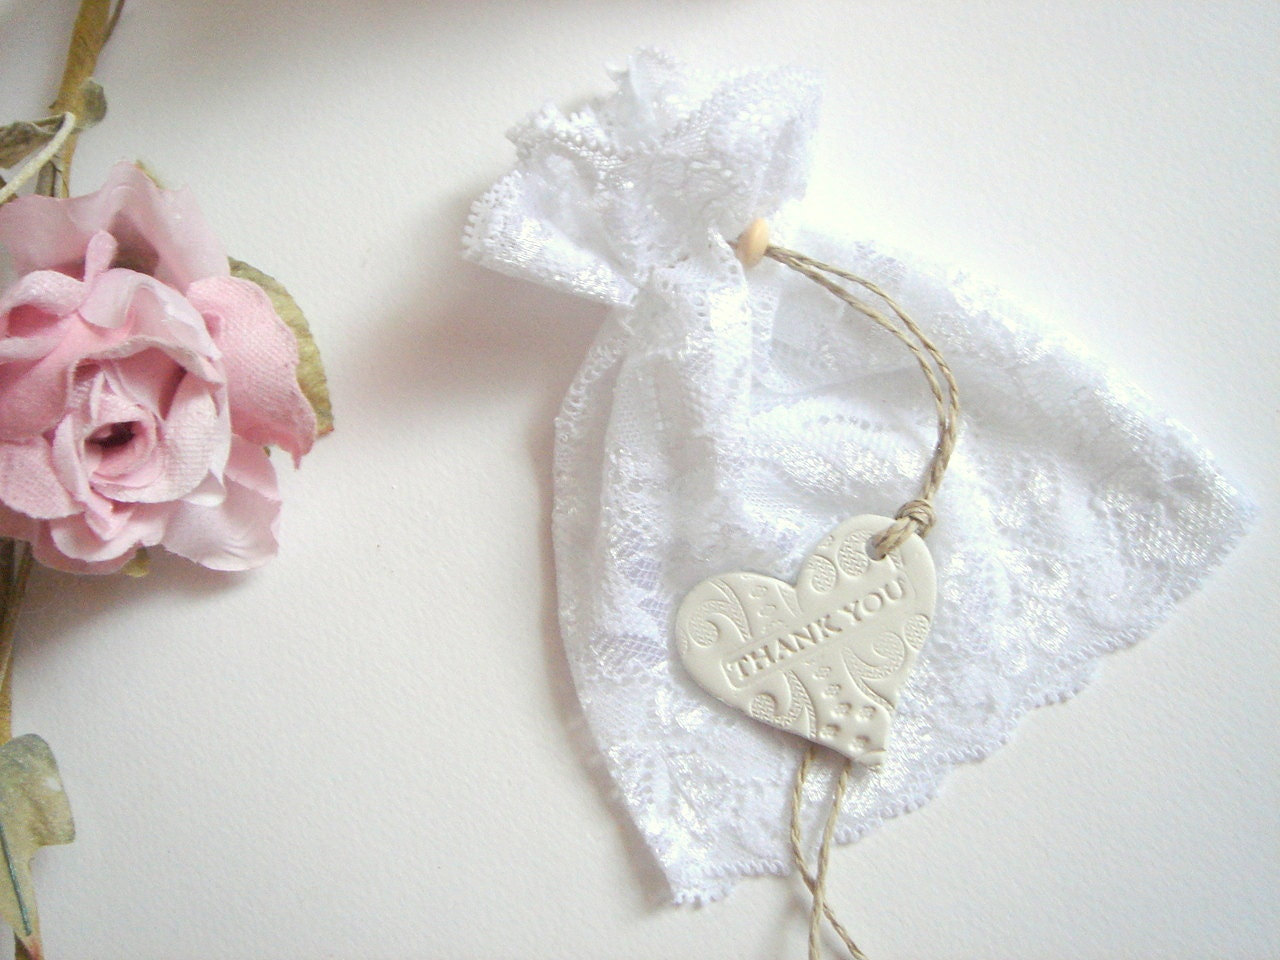 Wedding Favor Bags Lace : 50 Wedding Favor lace Bags Favor Bags with clay tags/Thank